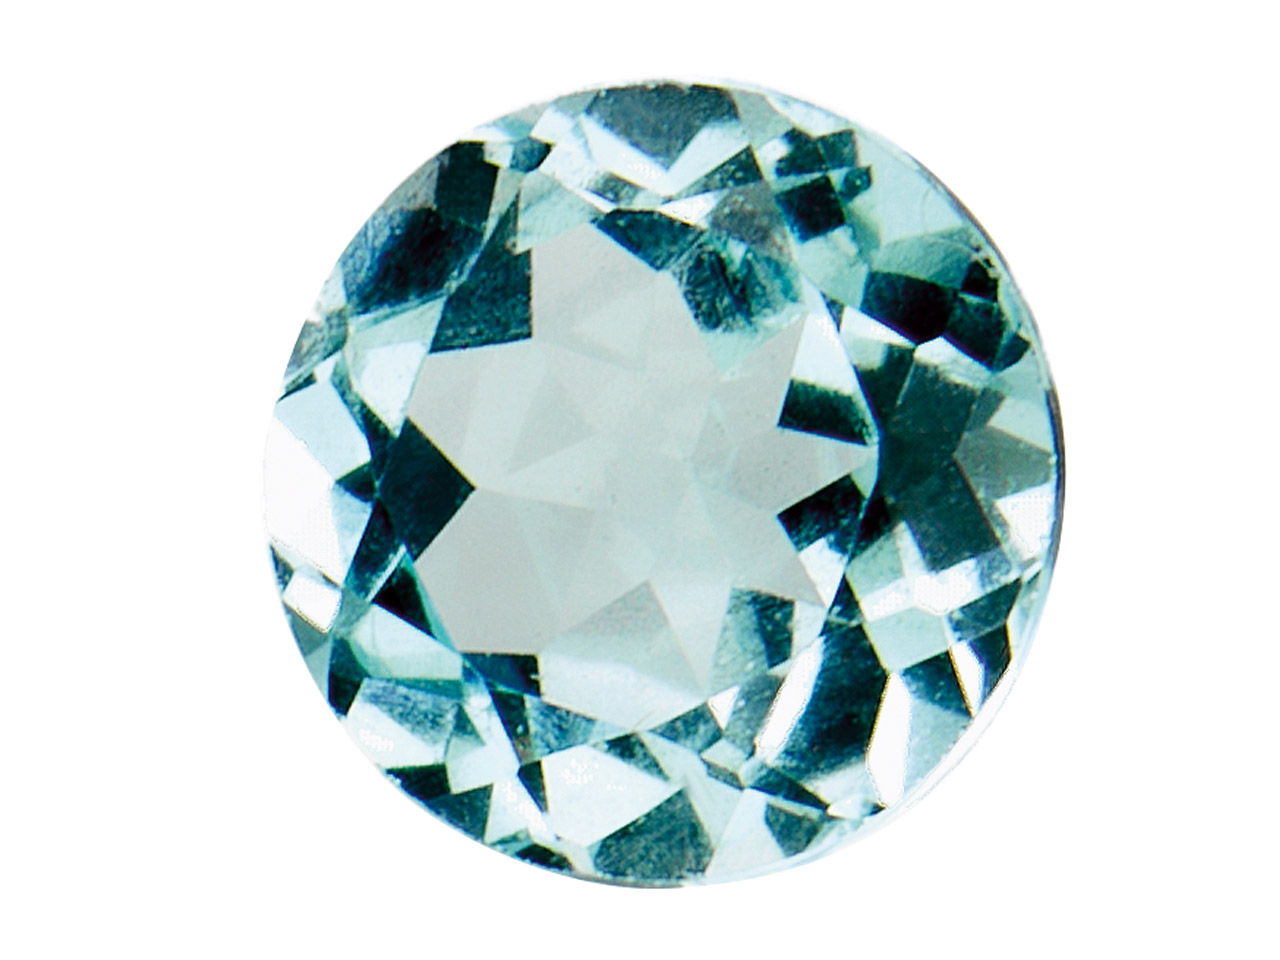 Sky Blue Topaz, Round, 5mm, Treated